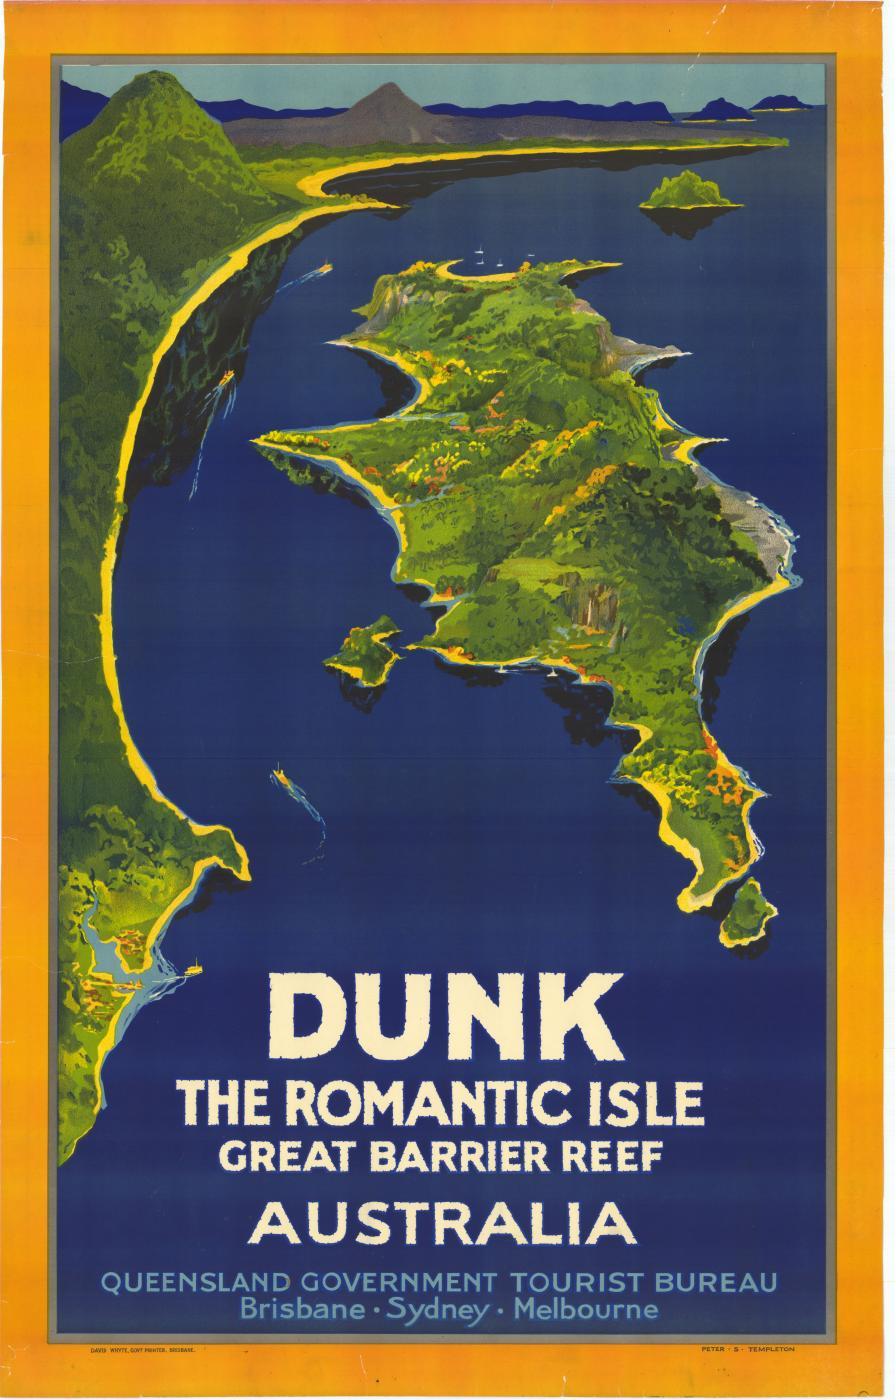 Dunk, The Romantic Isle, Great Barrier Reef, Australia